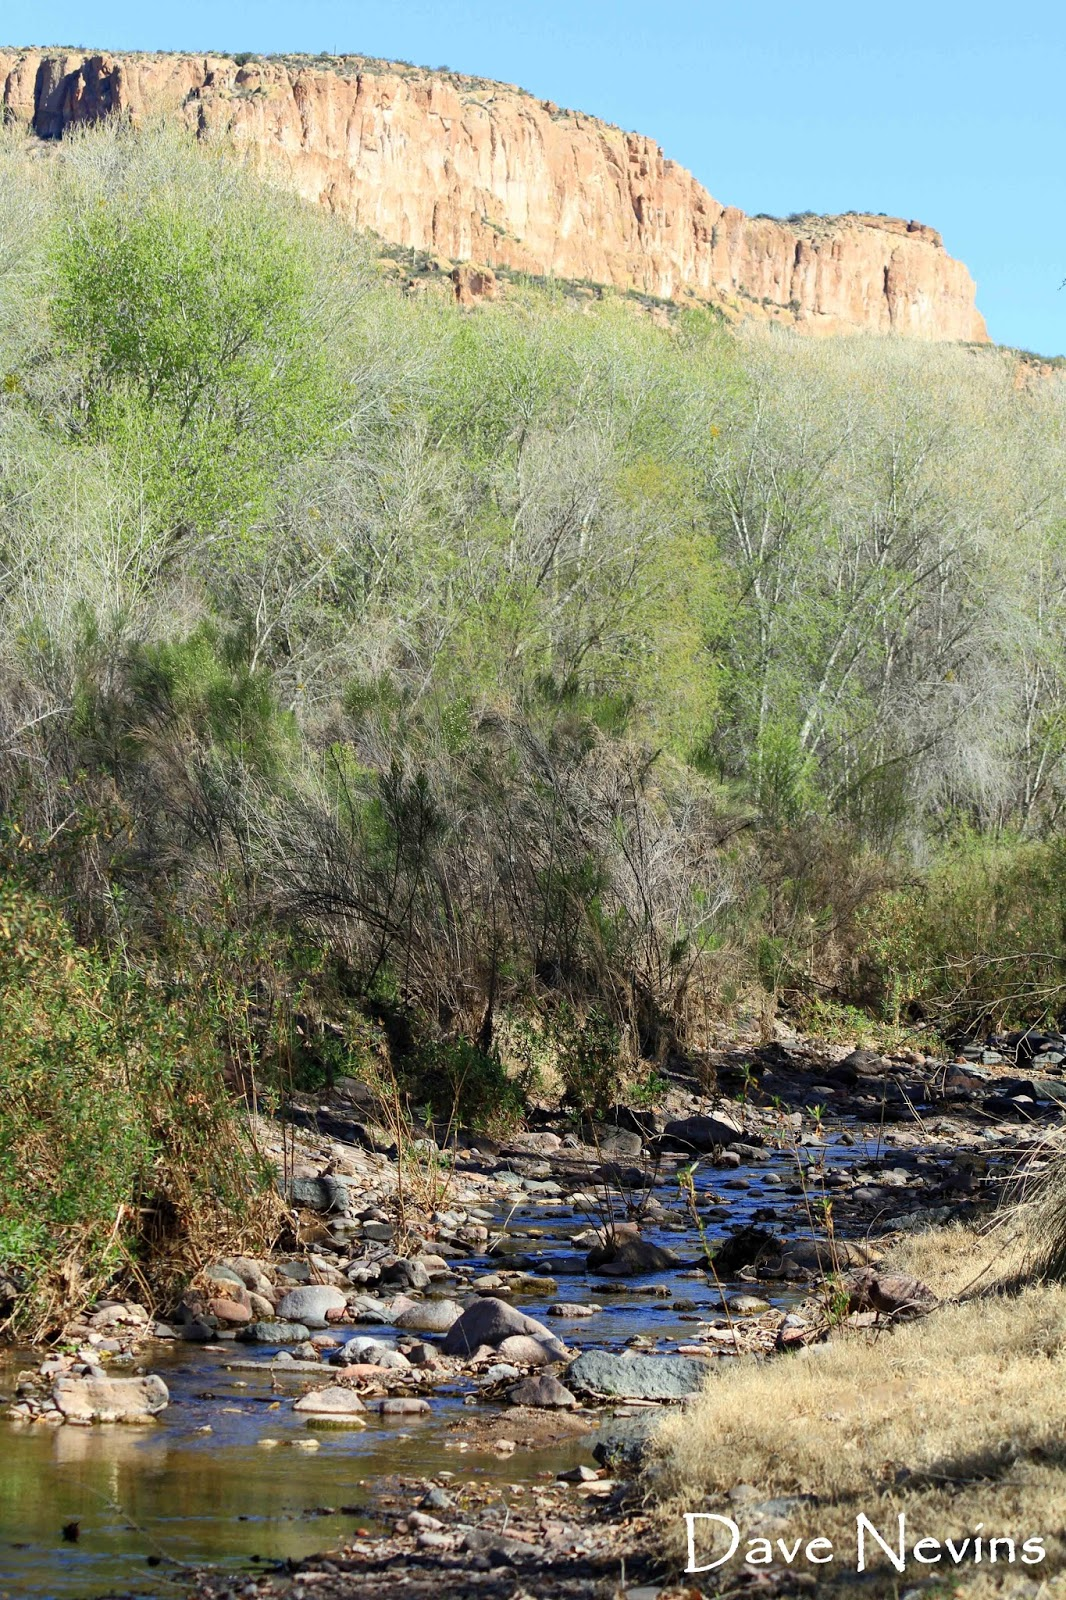 no limits aravaipa canyon a brief appearance by edward abbey aravaipa canyon wilderness is a special place for me and yes there will be more aravaipa s and blog posts in the future